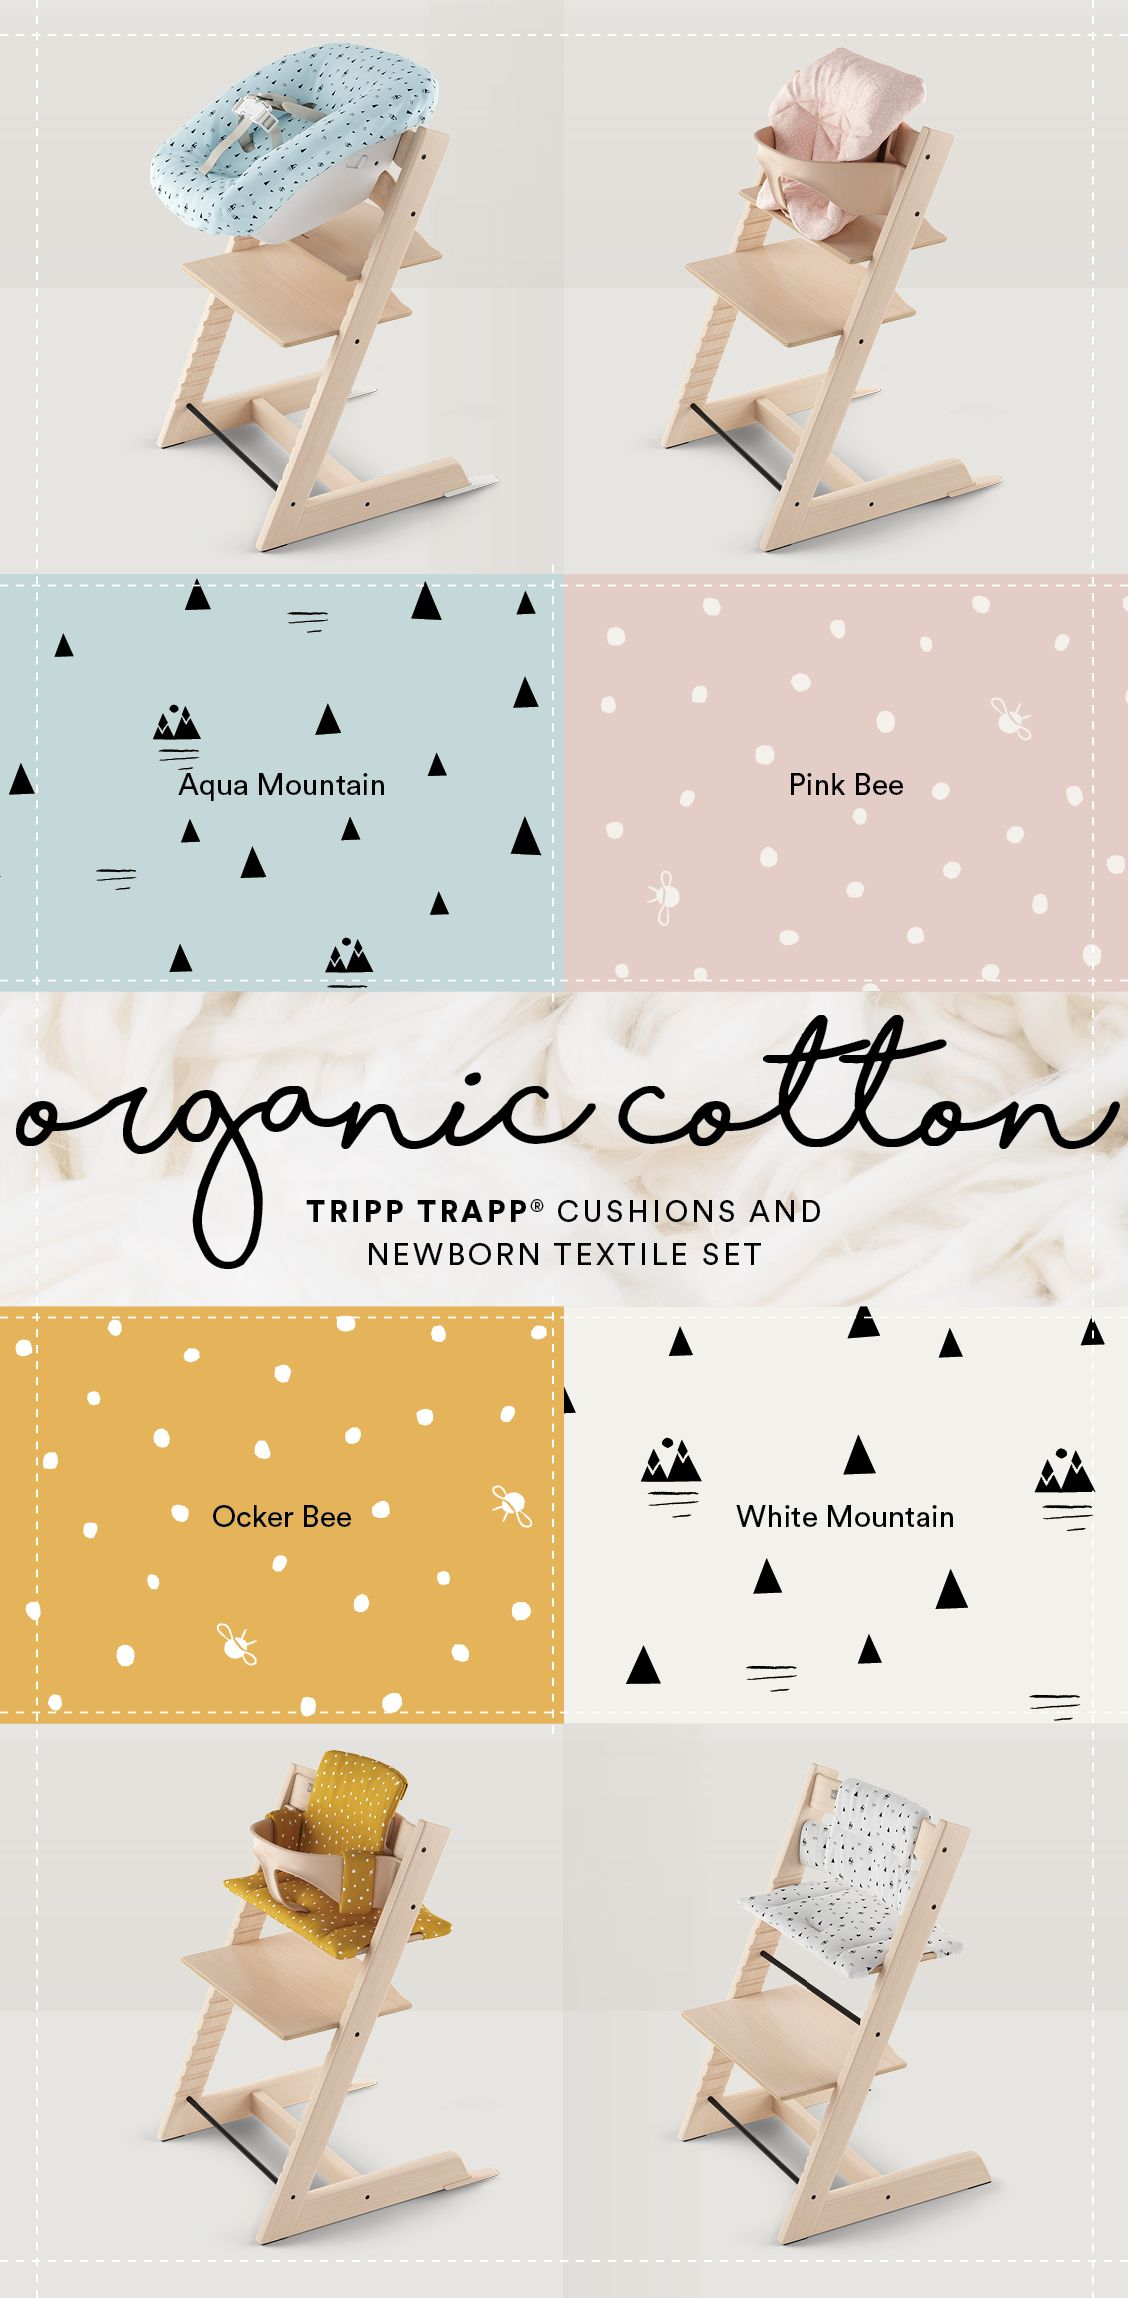 97b183bbb New 100% organic cotton cushions and accessories for your baby s ...